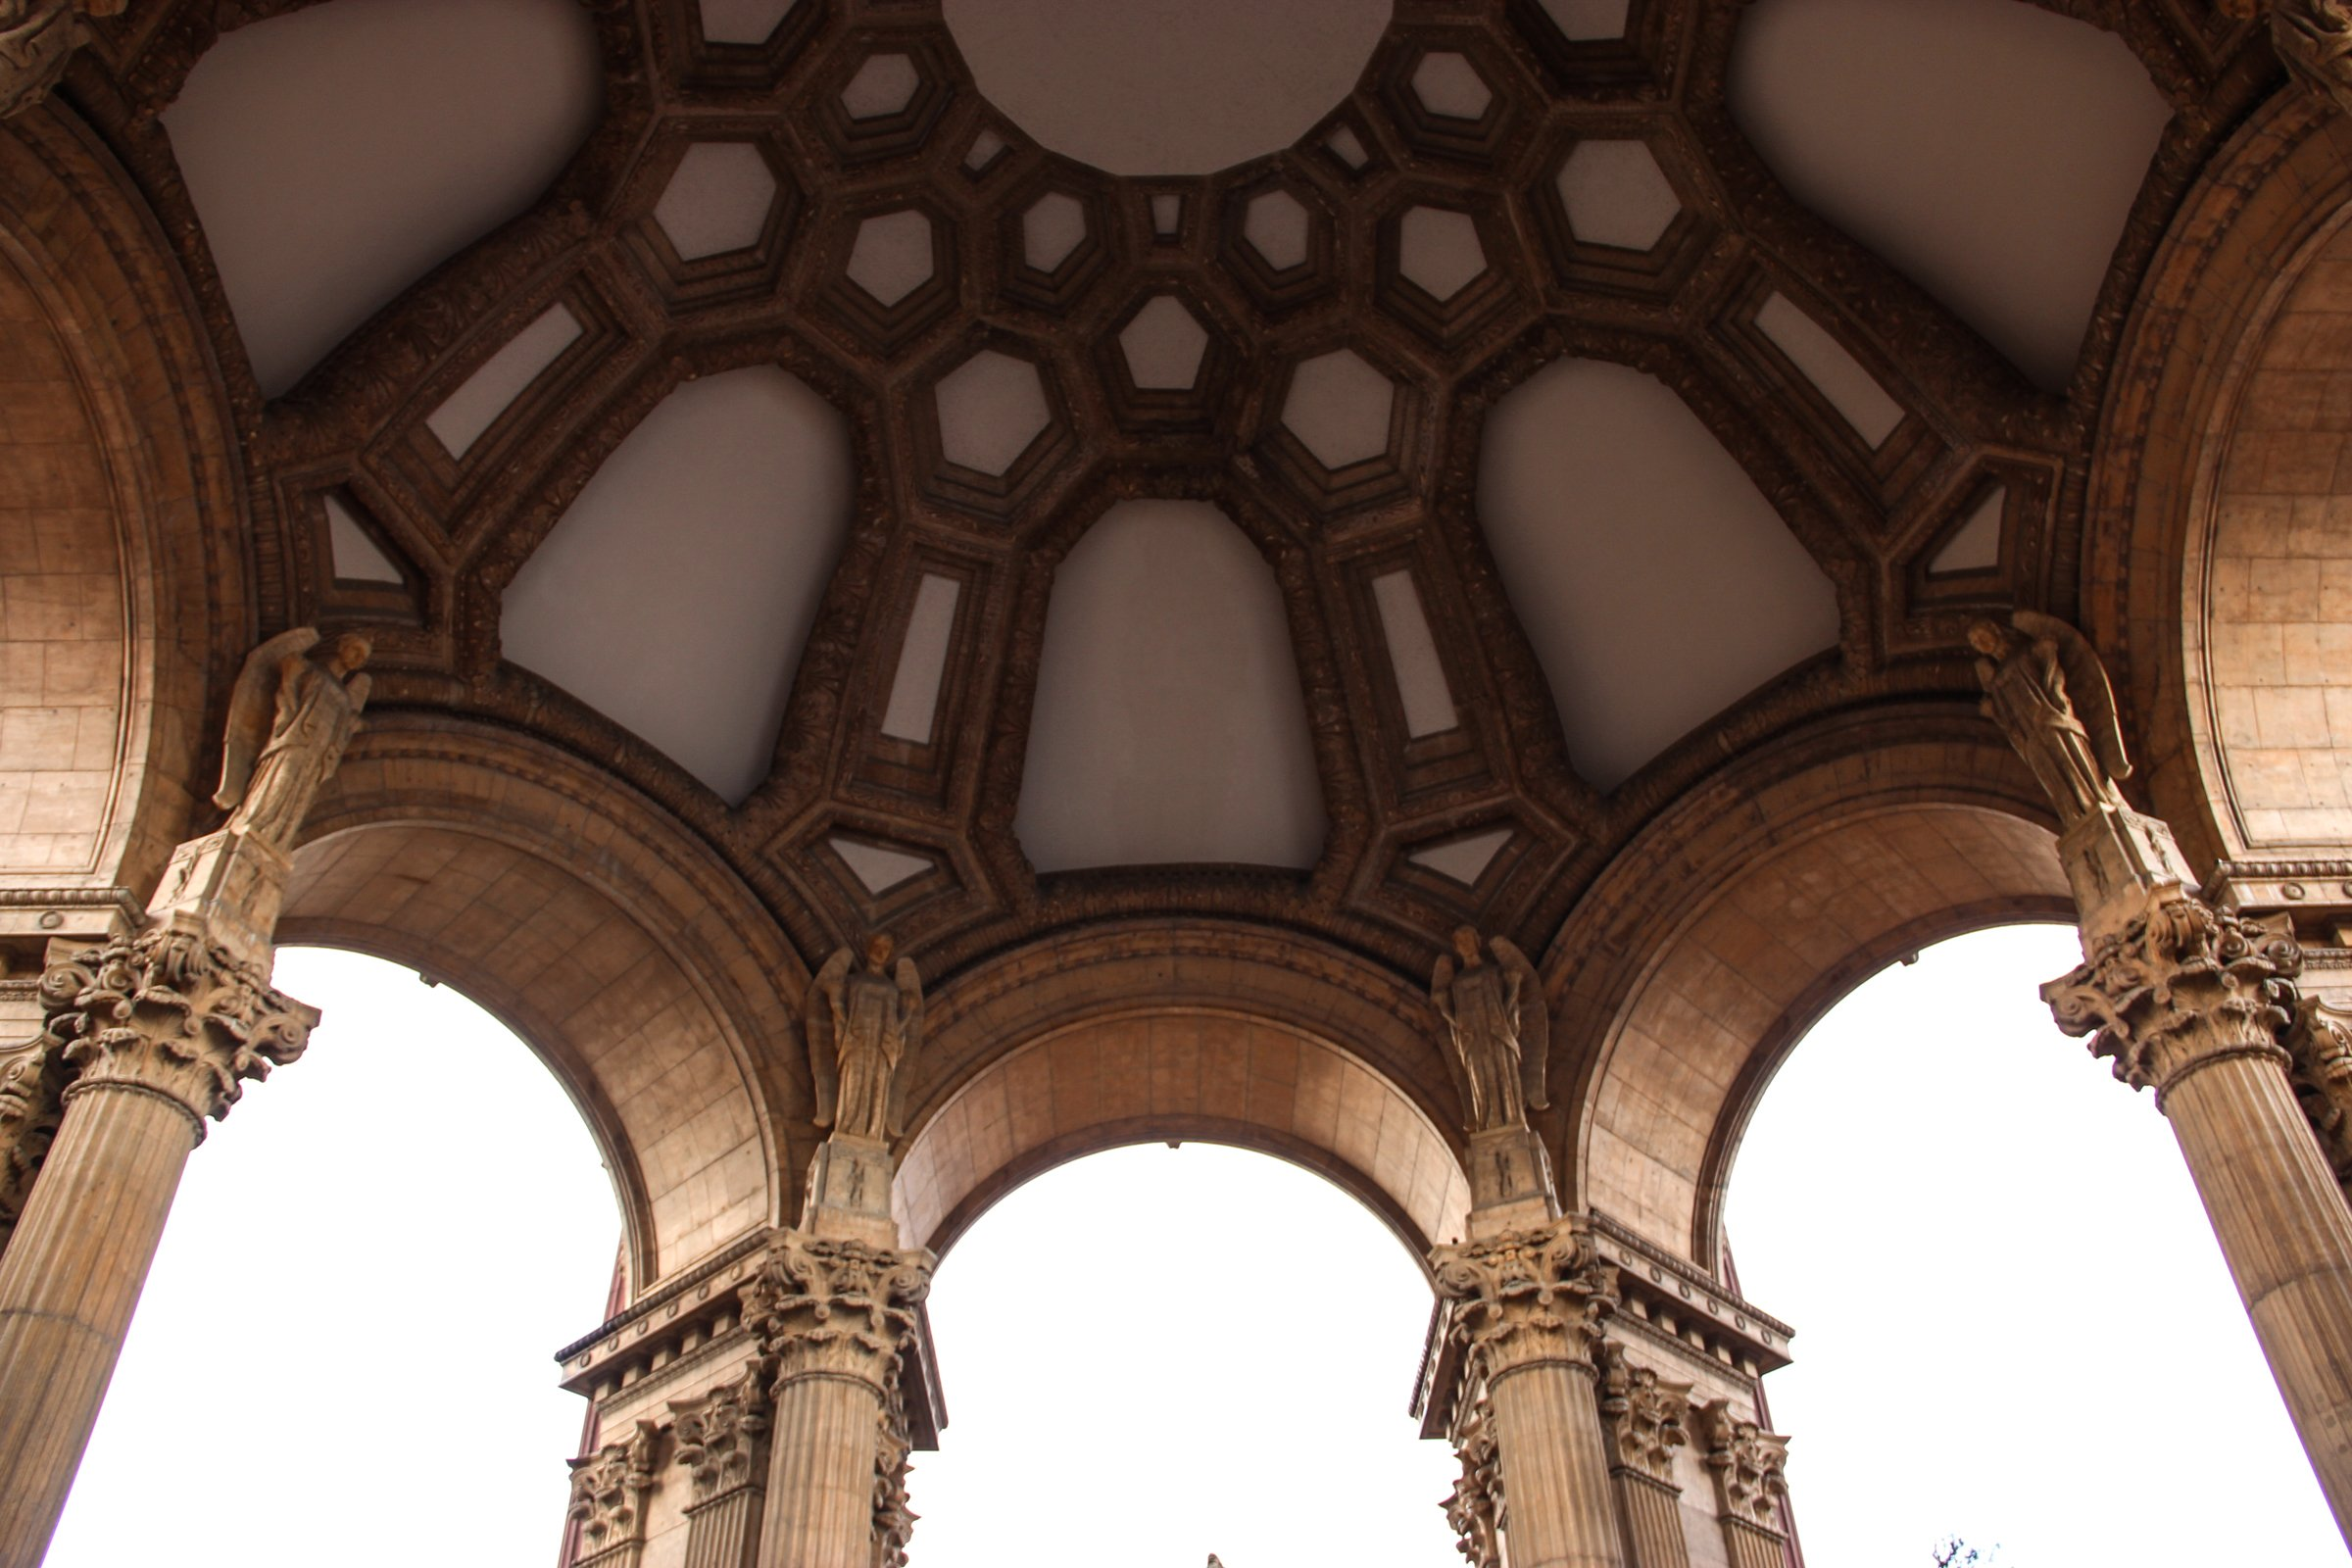 Free Stock Photo of Dome Ceiling with Arches